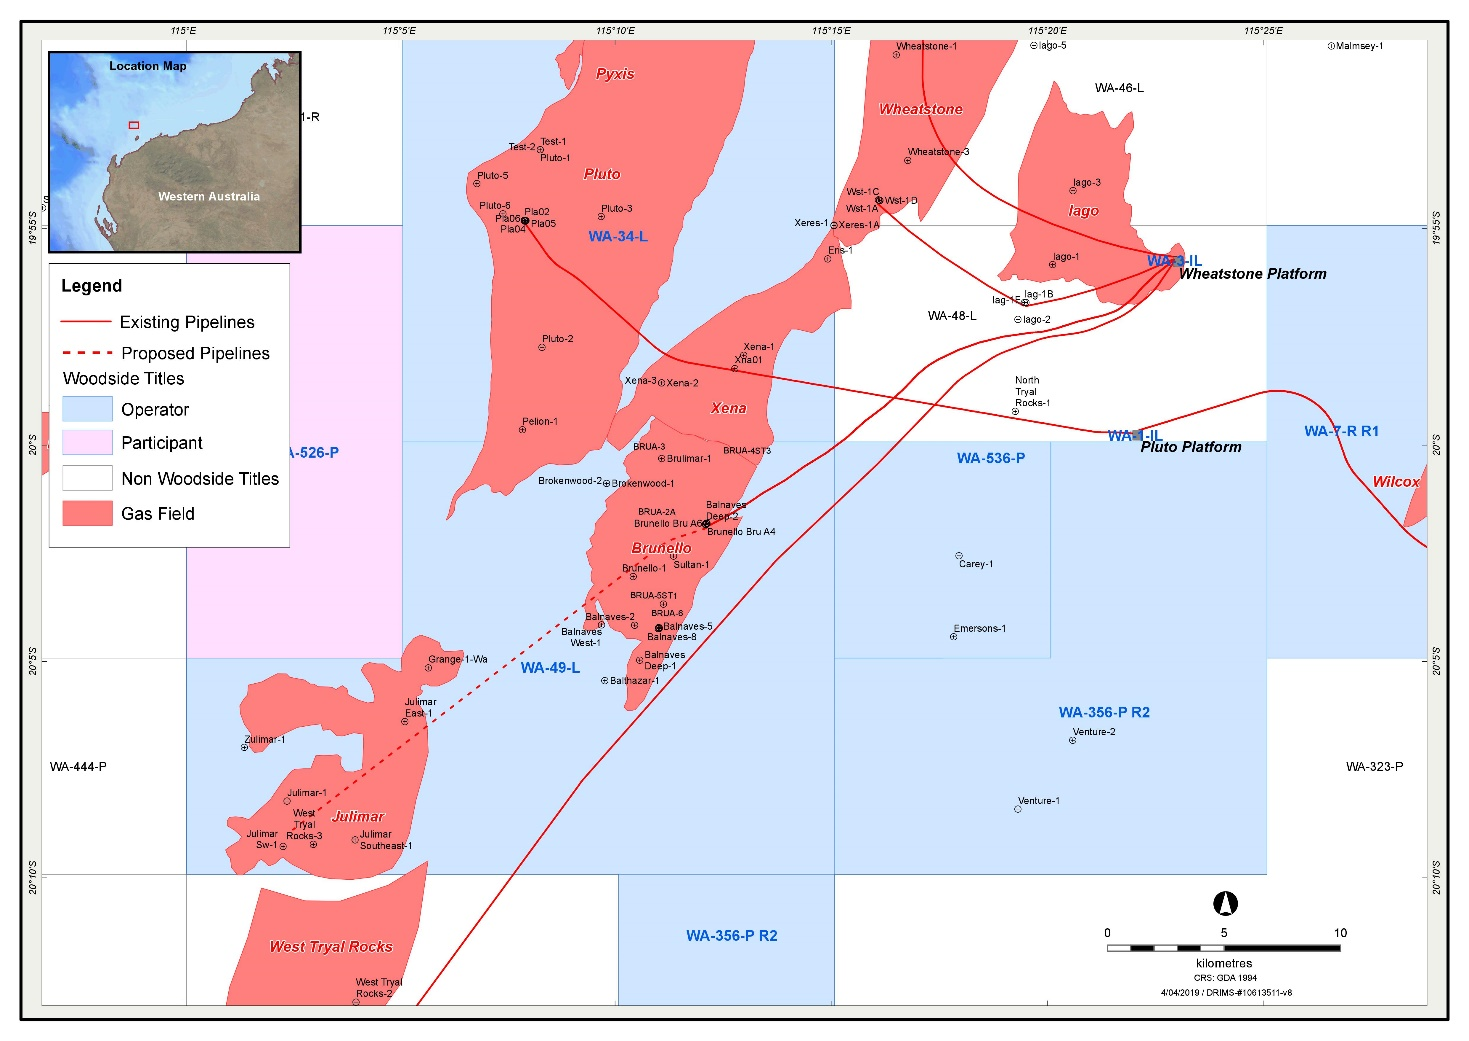 Location map - Activity: Julimar Phase 2 Drilling and Subsea Installation (refer to description)